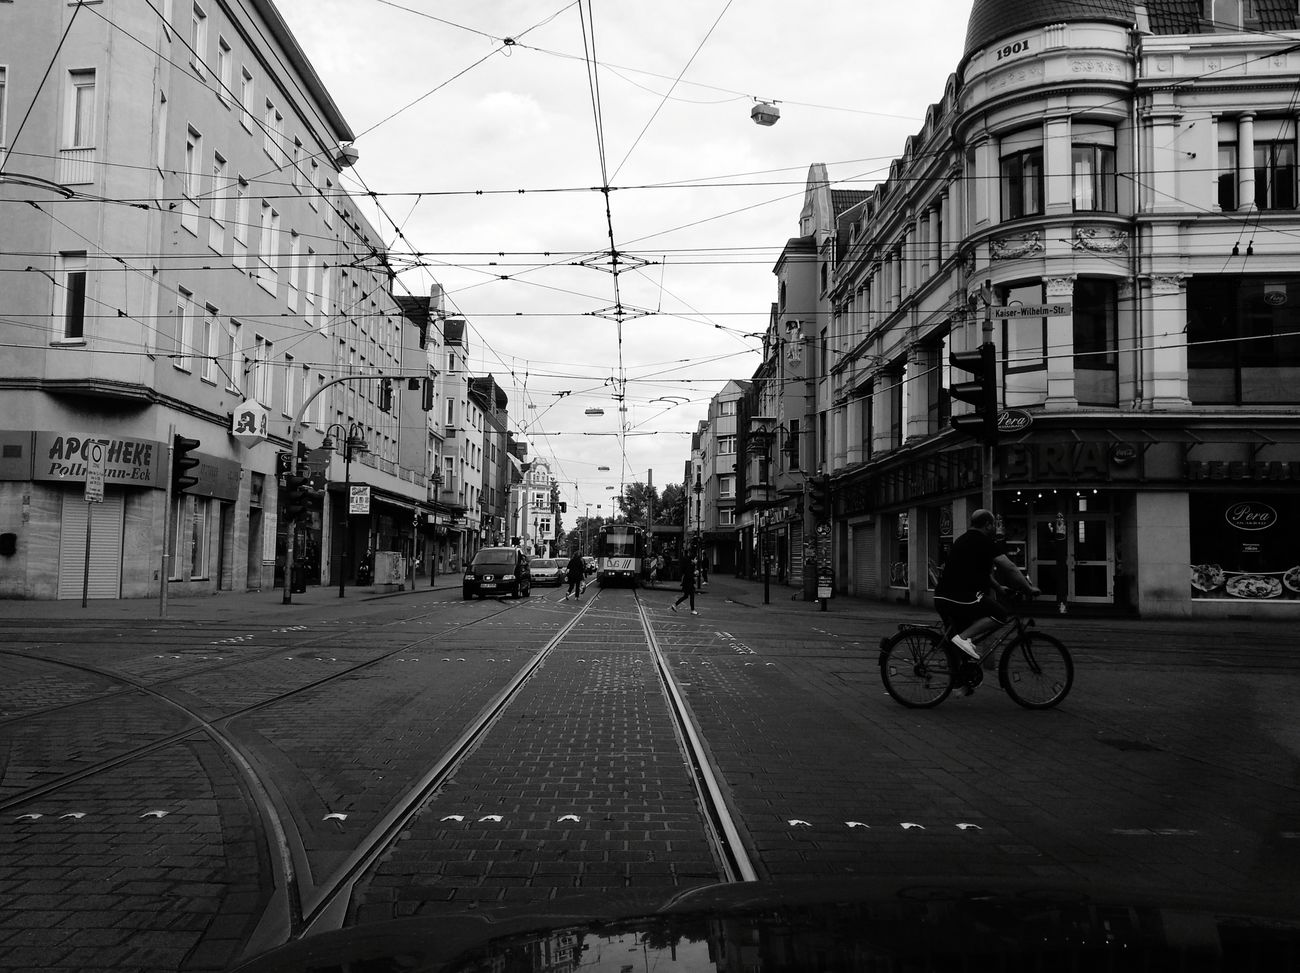 City City Street We Are Photography, We Are EyeEm We Are Eyeem, We Are Photography Black And White Bnw Blackandwhite The Street Photographer - 2017 EyeEm Awards Black & White